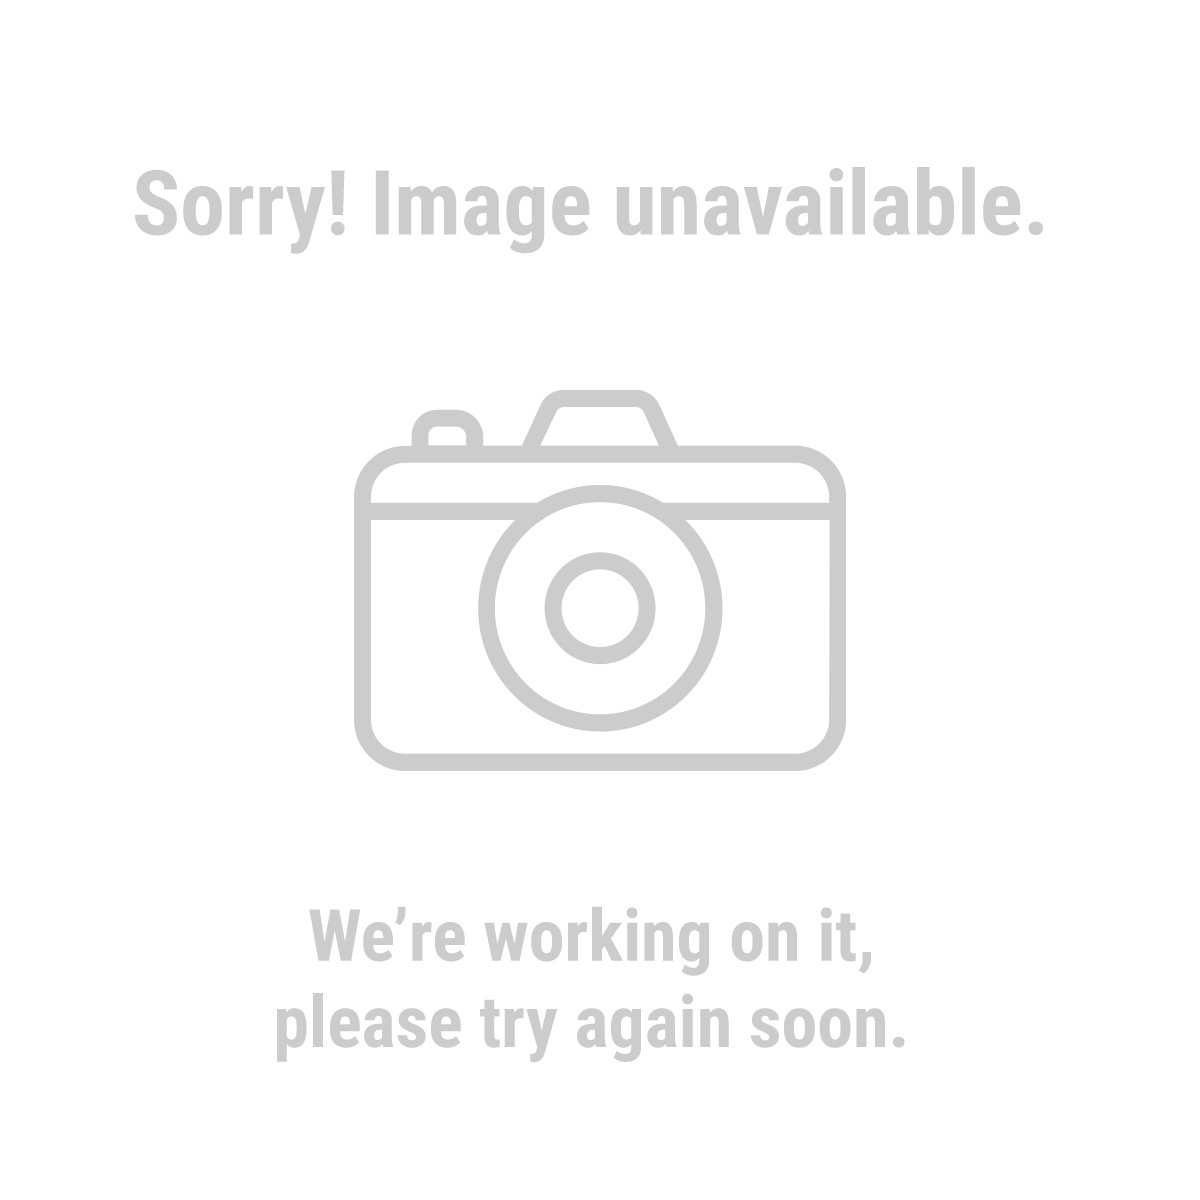 Pittsburgh 69357 7 Piece Pliers Set